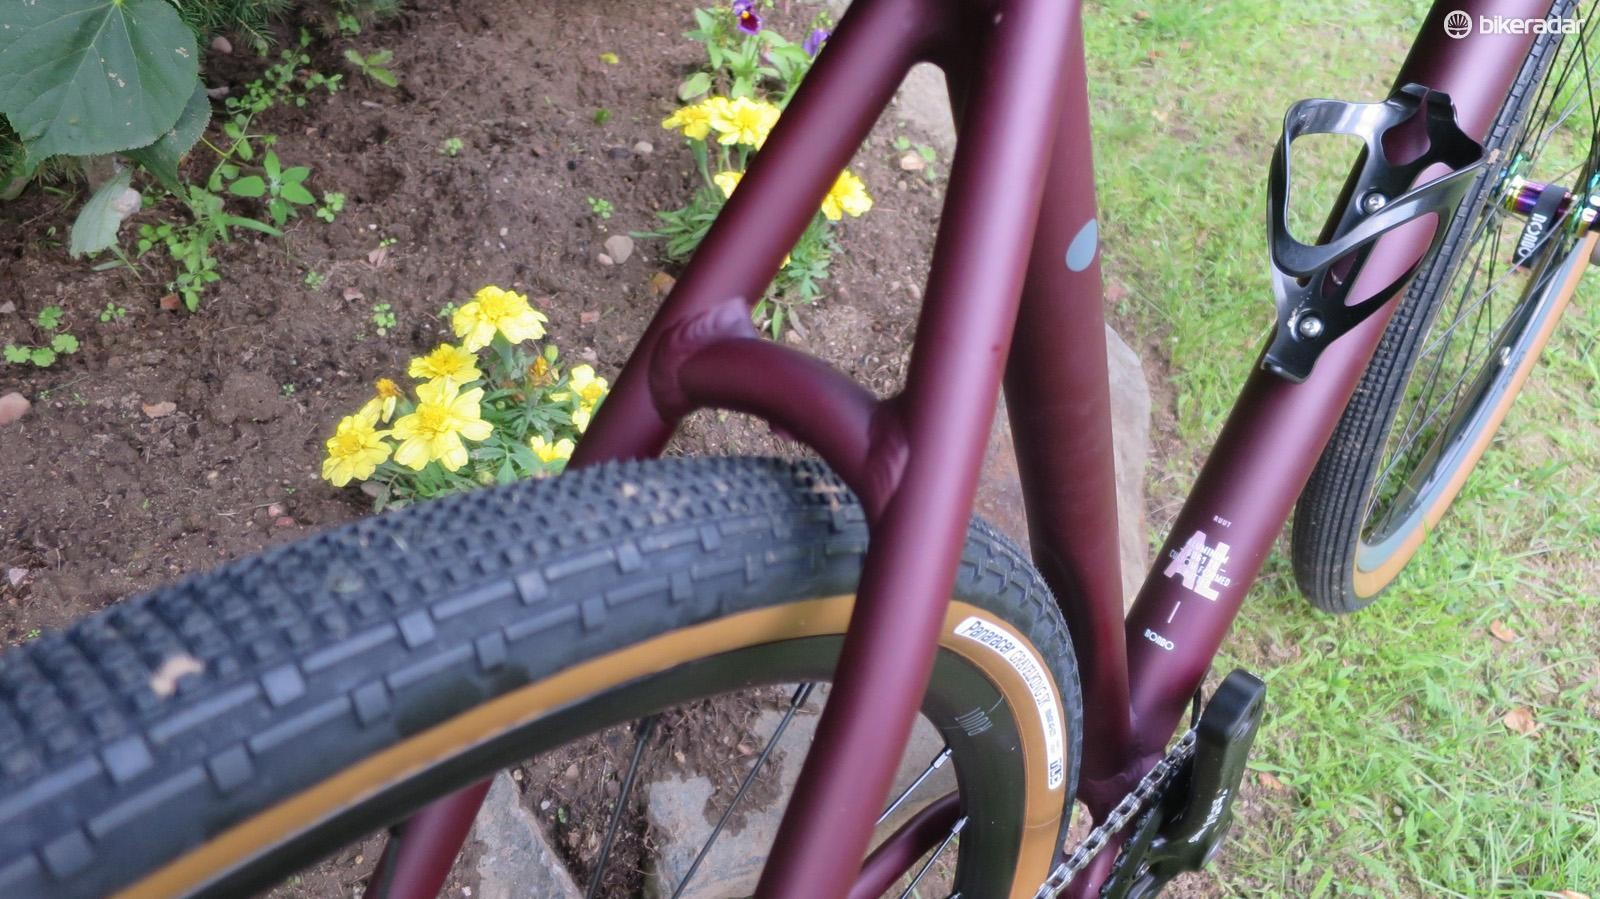 The AL has plenty of room for big tyres and it ships with a 43mm wide 40c Gravel King pairing